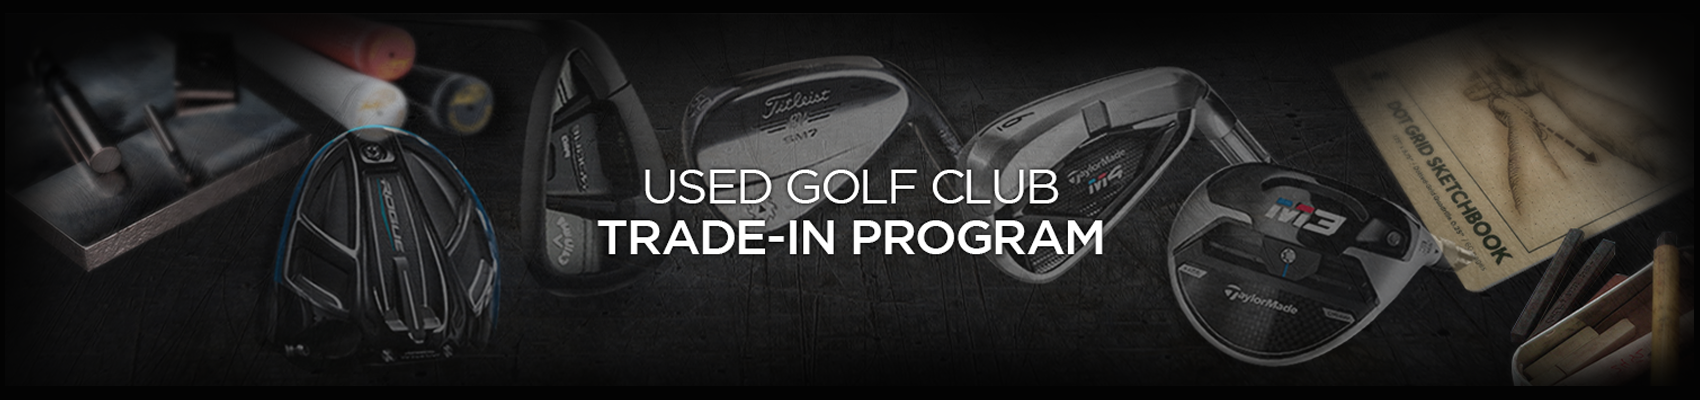 Golfio Trade In Program